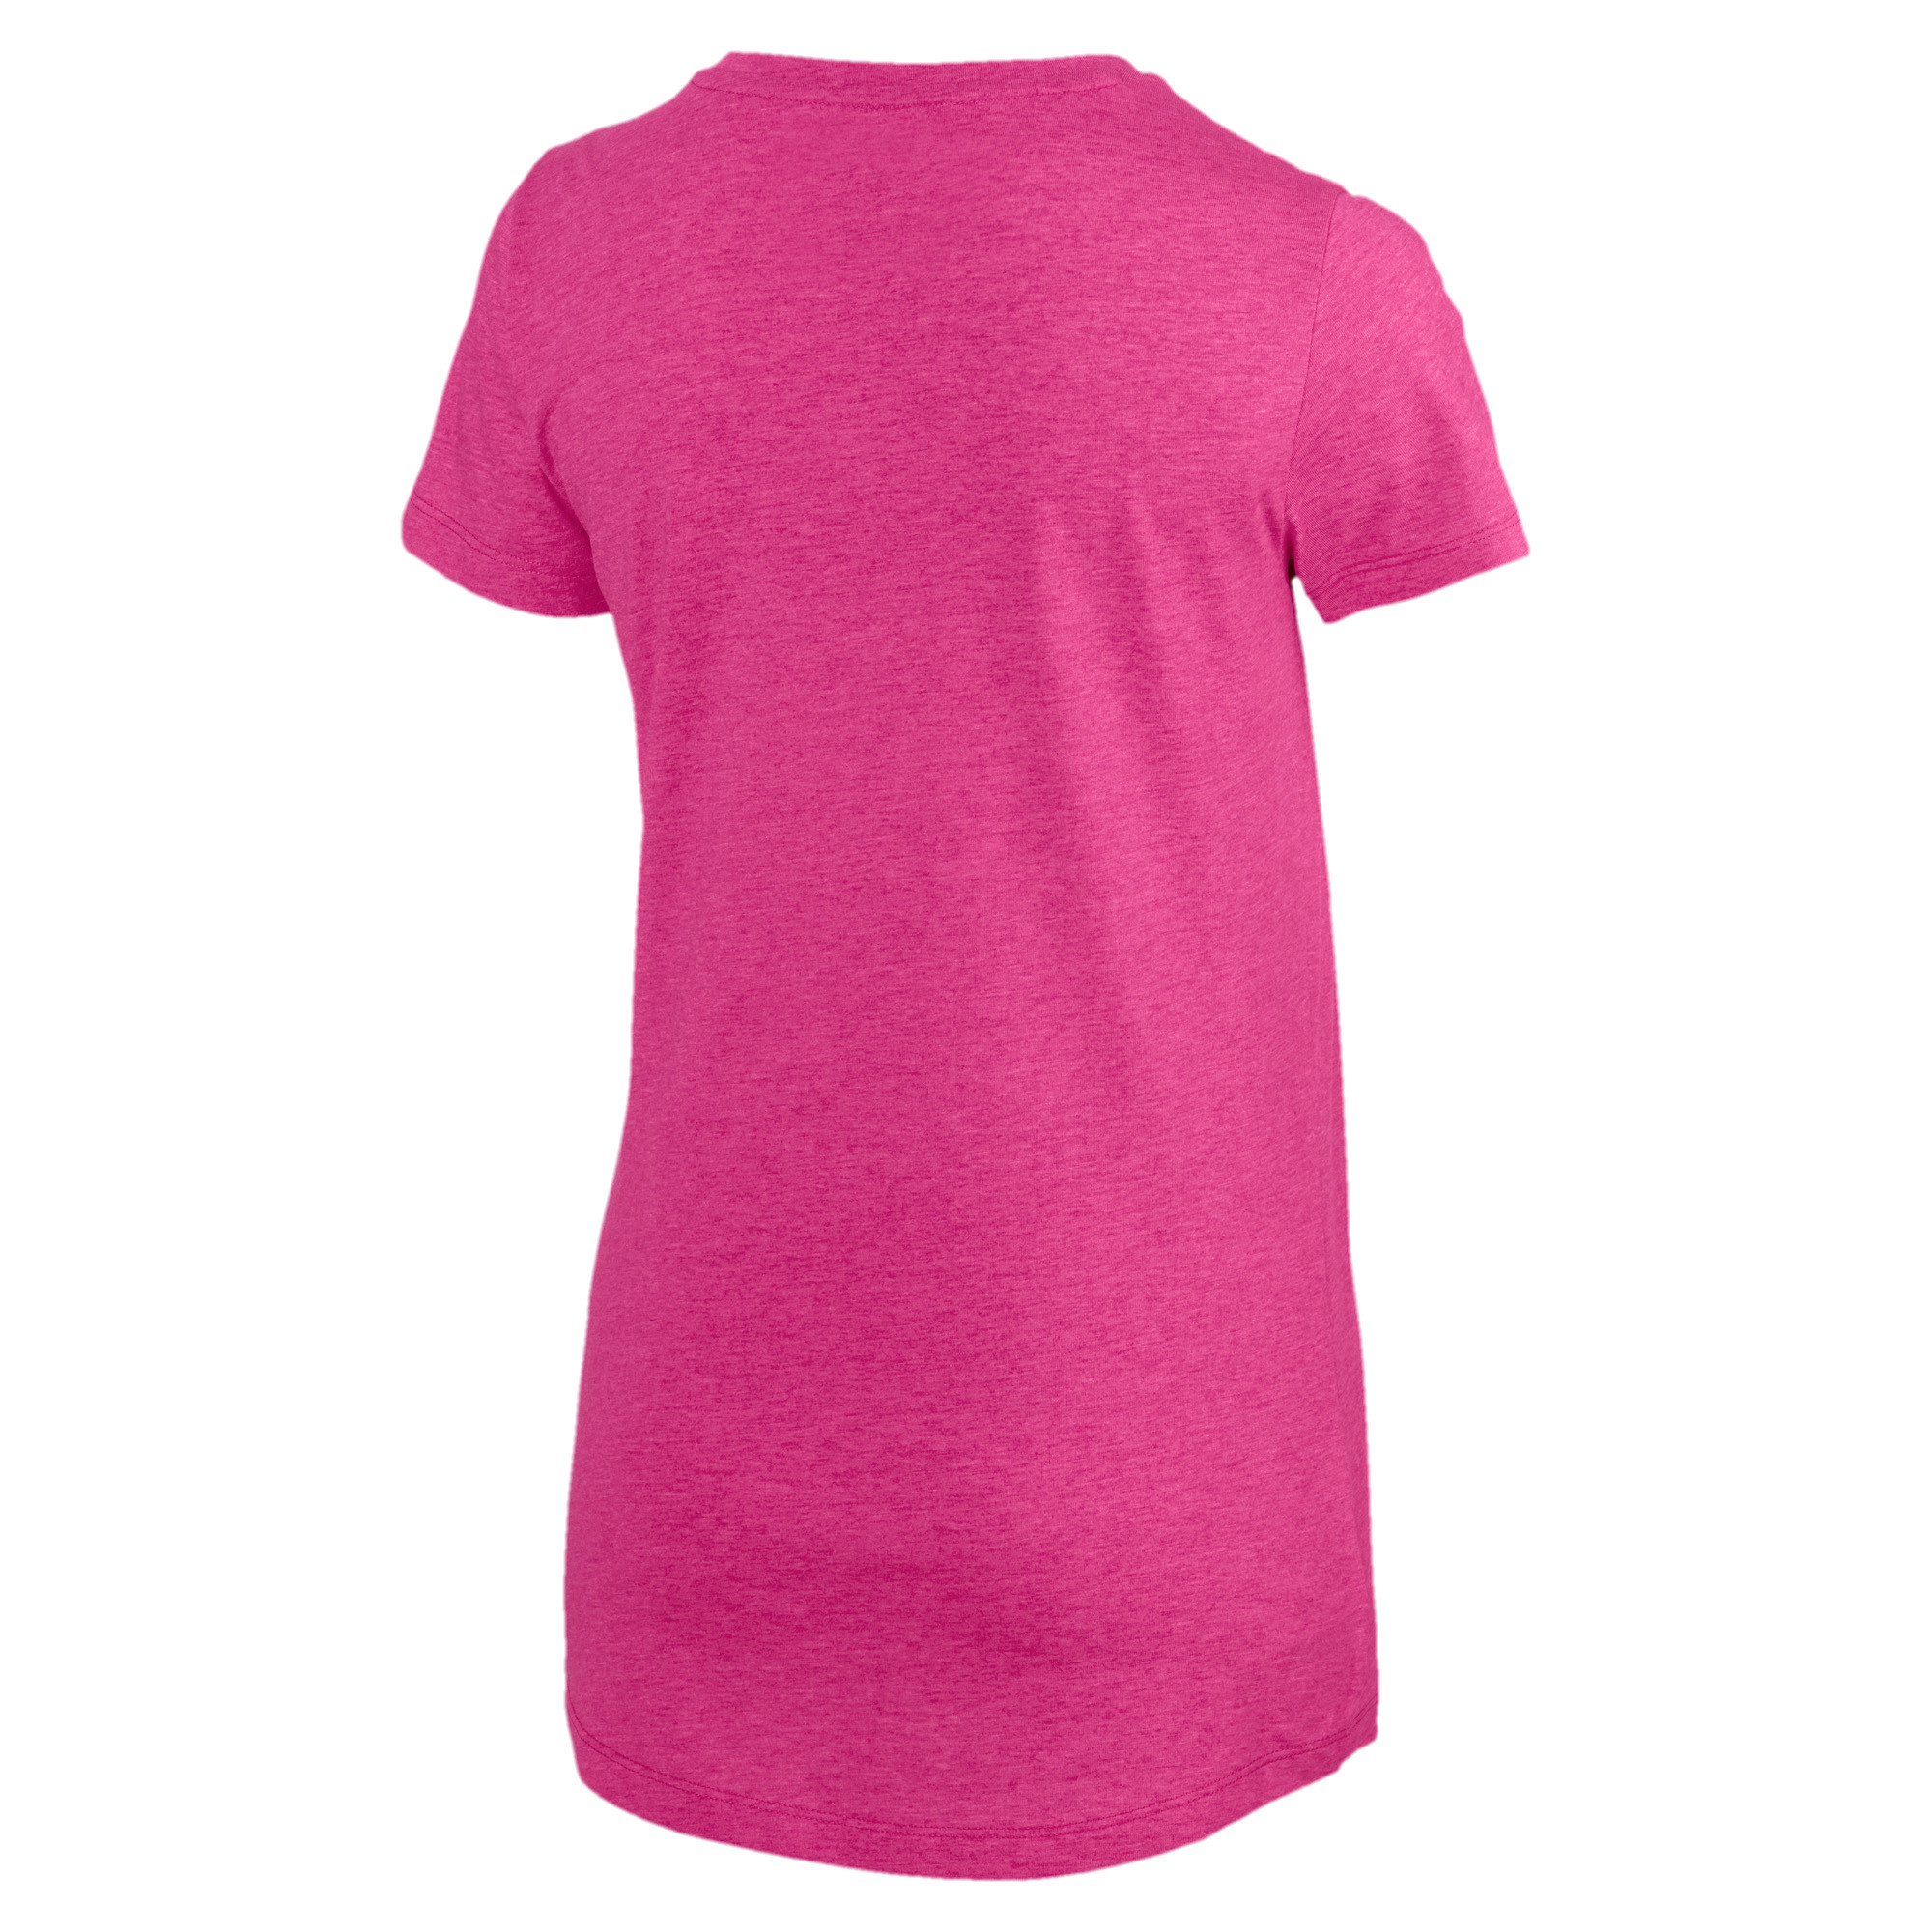 PUMA-Essentials-Women-039-s-Heather-Tee-Women-Tee-Basics thumbnail 6